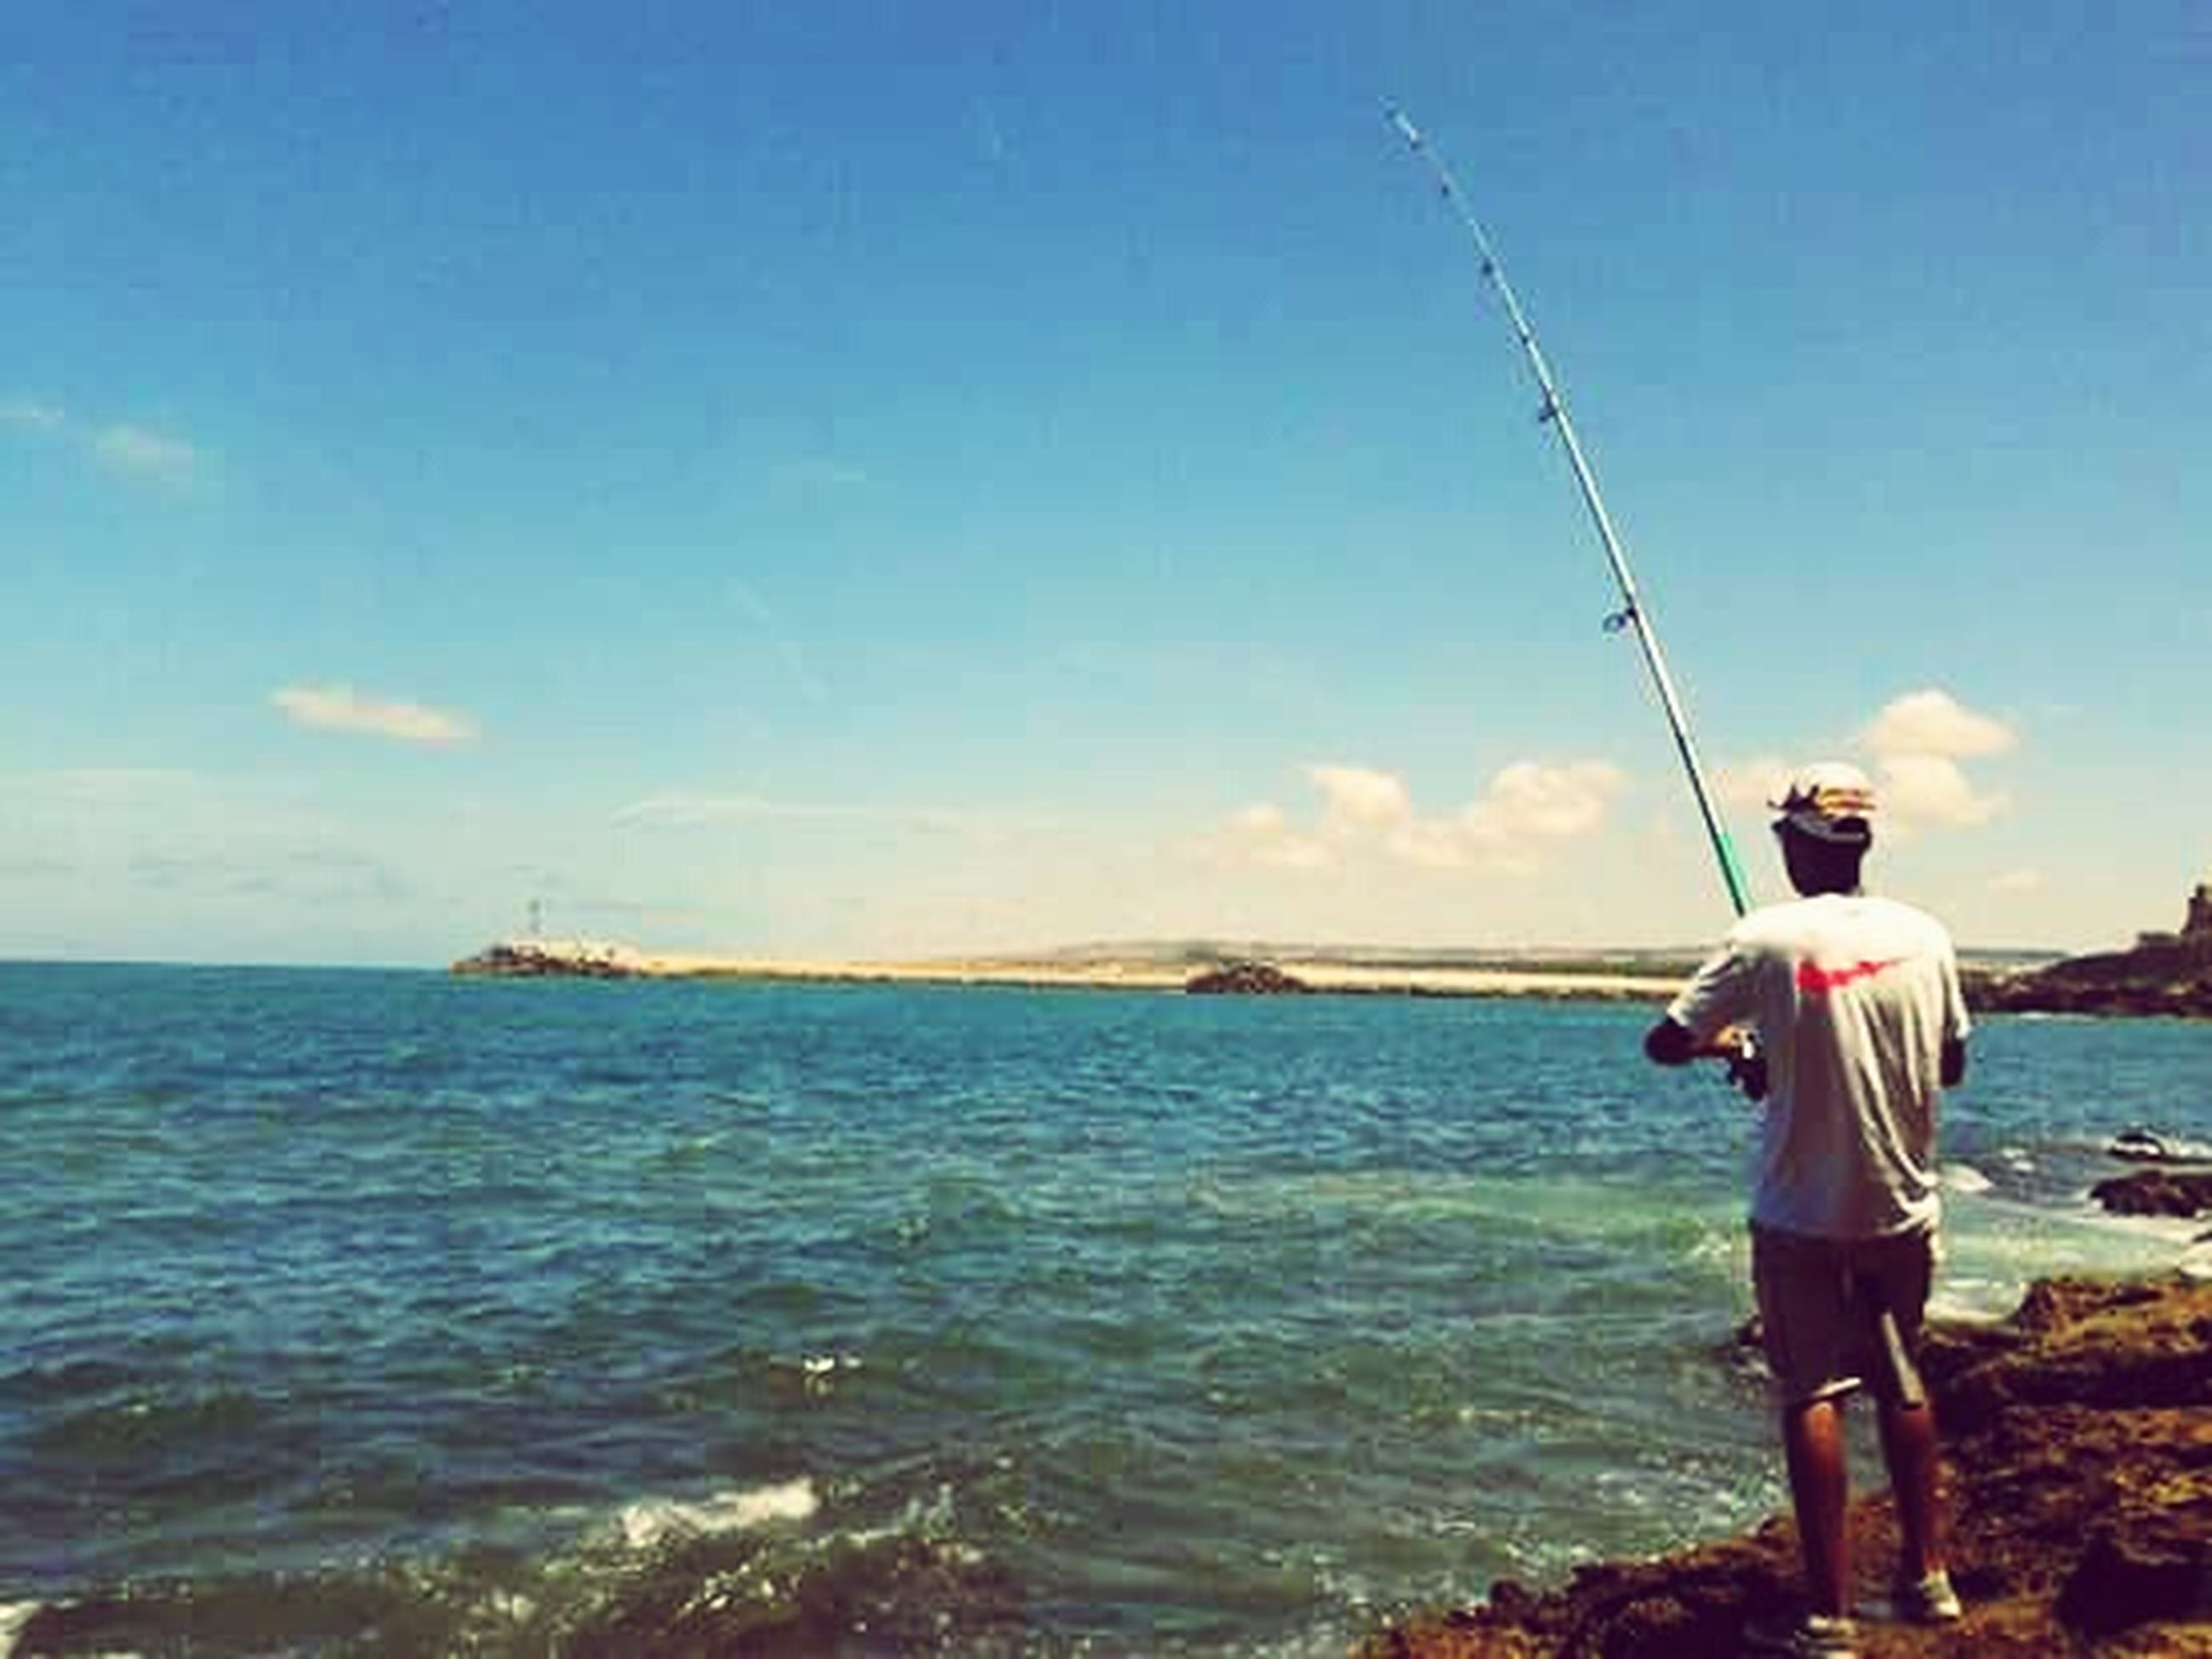 water, sea, leisure activity, lifestyles, full length, sky, horizon over water, nautical vessel, fishing, men, standing, rear view, fishing rod, beach, nature, casual clothing, vacations, beauty in nature